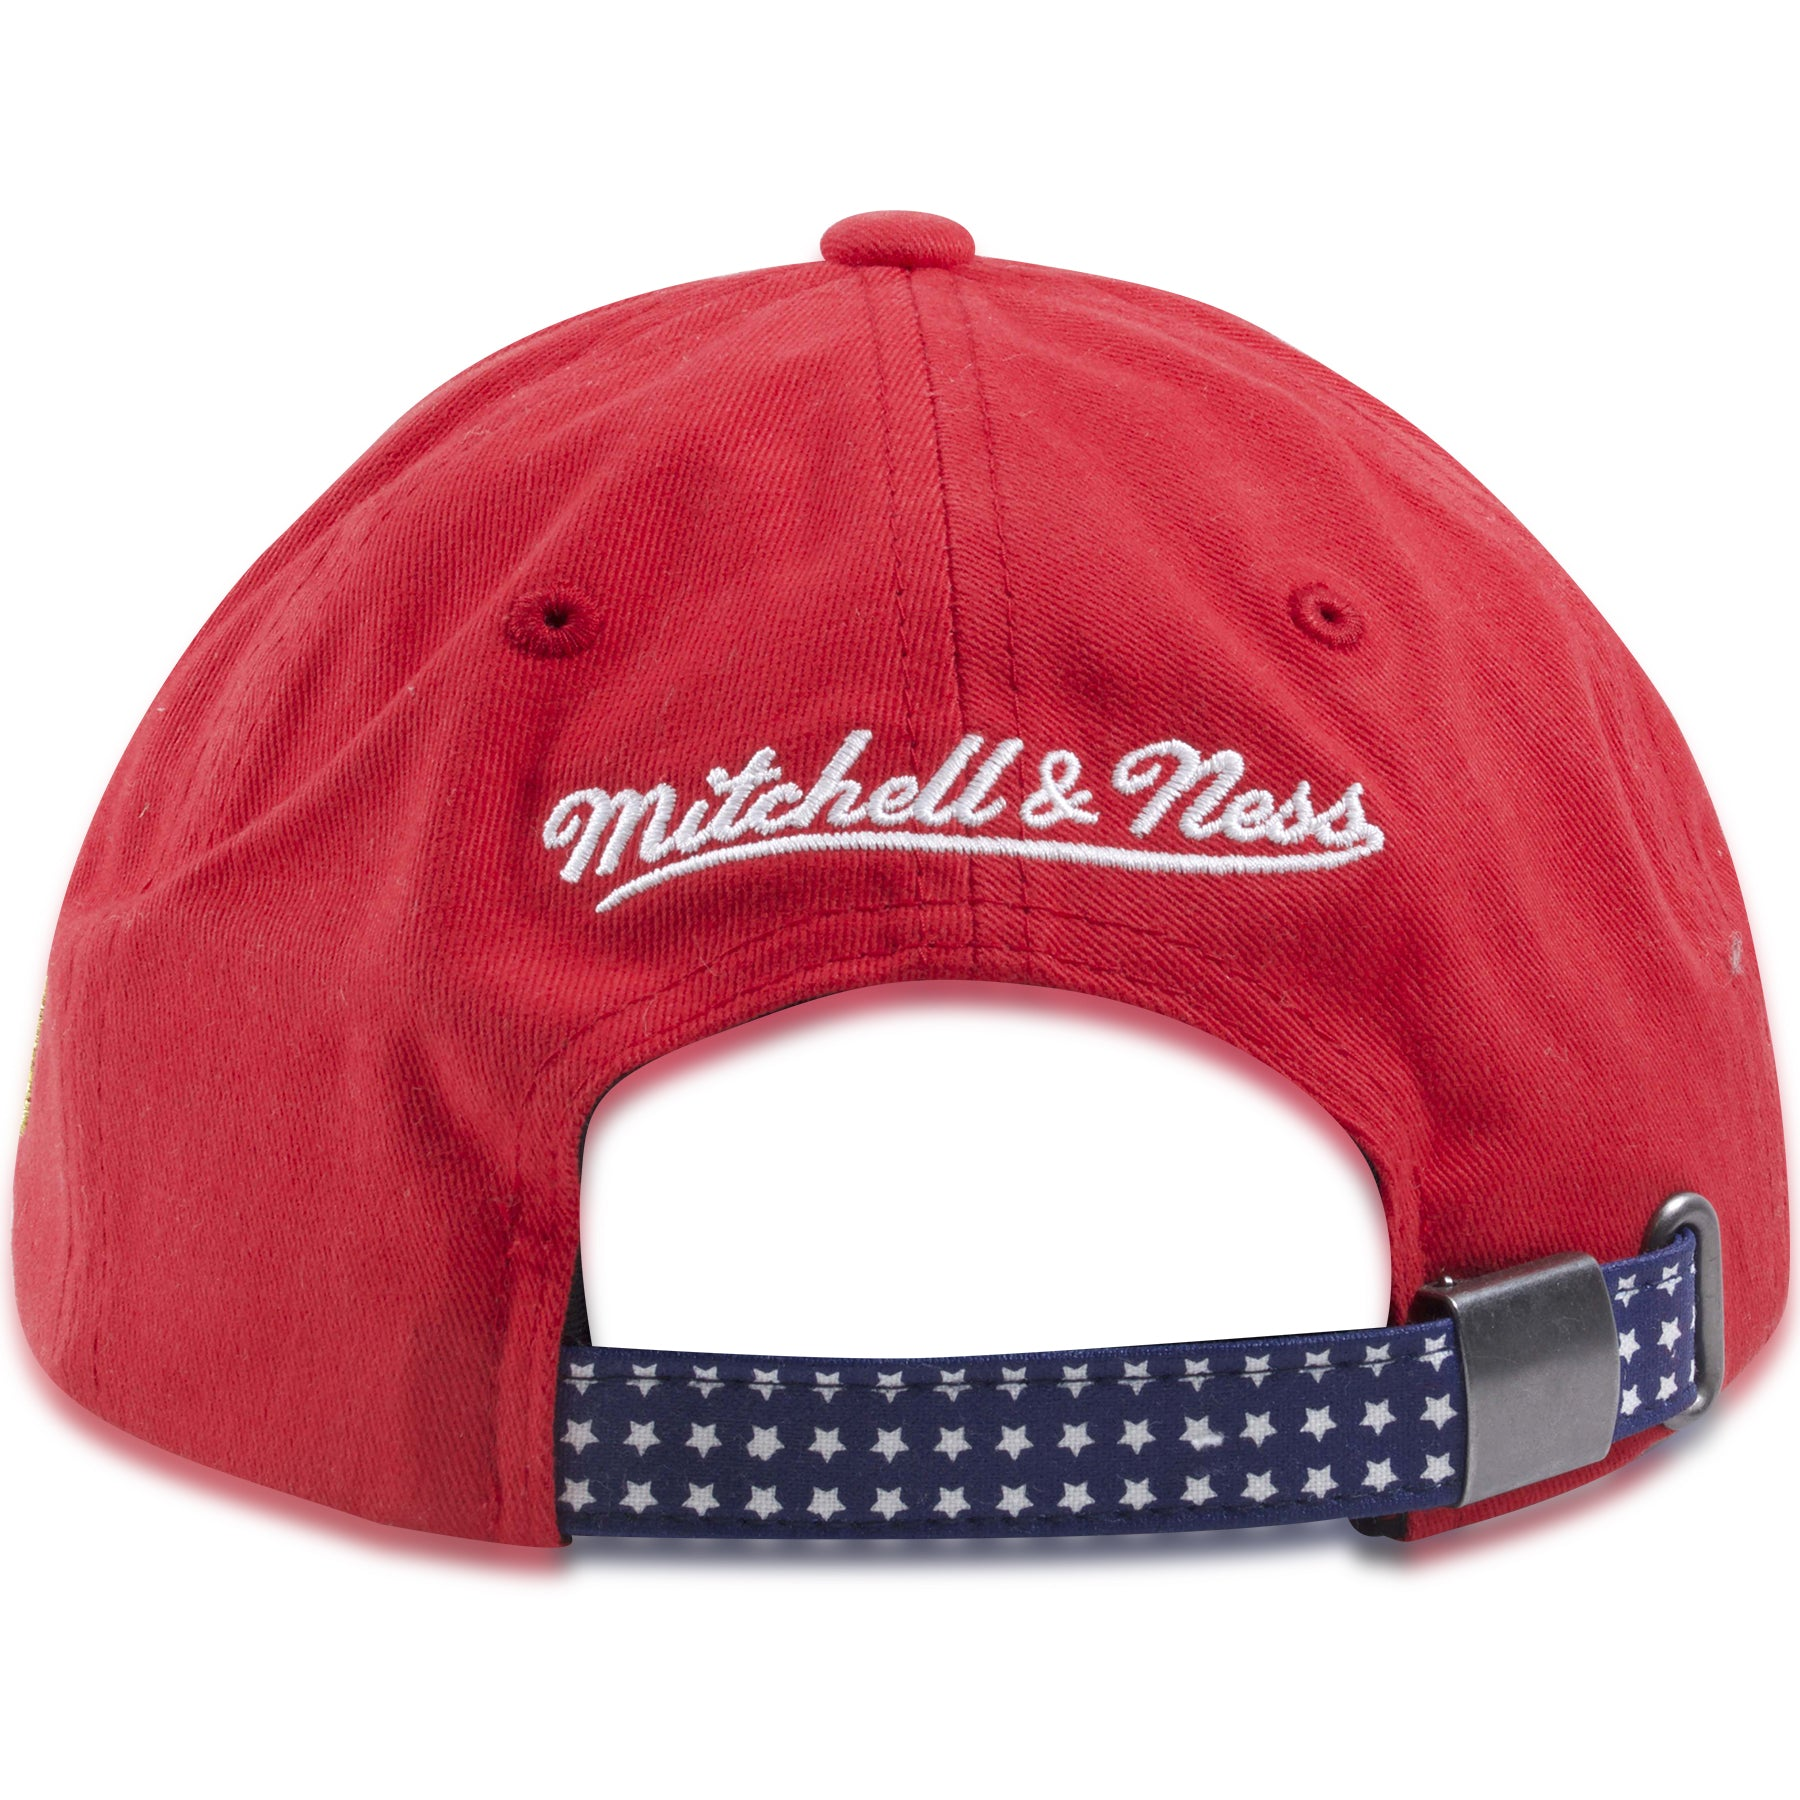 competitive price c4828 47bc0 ... Chicago Bulls Fourth of July Red Flag Patch Adjustable Baseball Cap ...